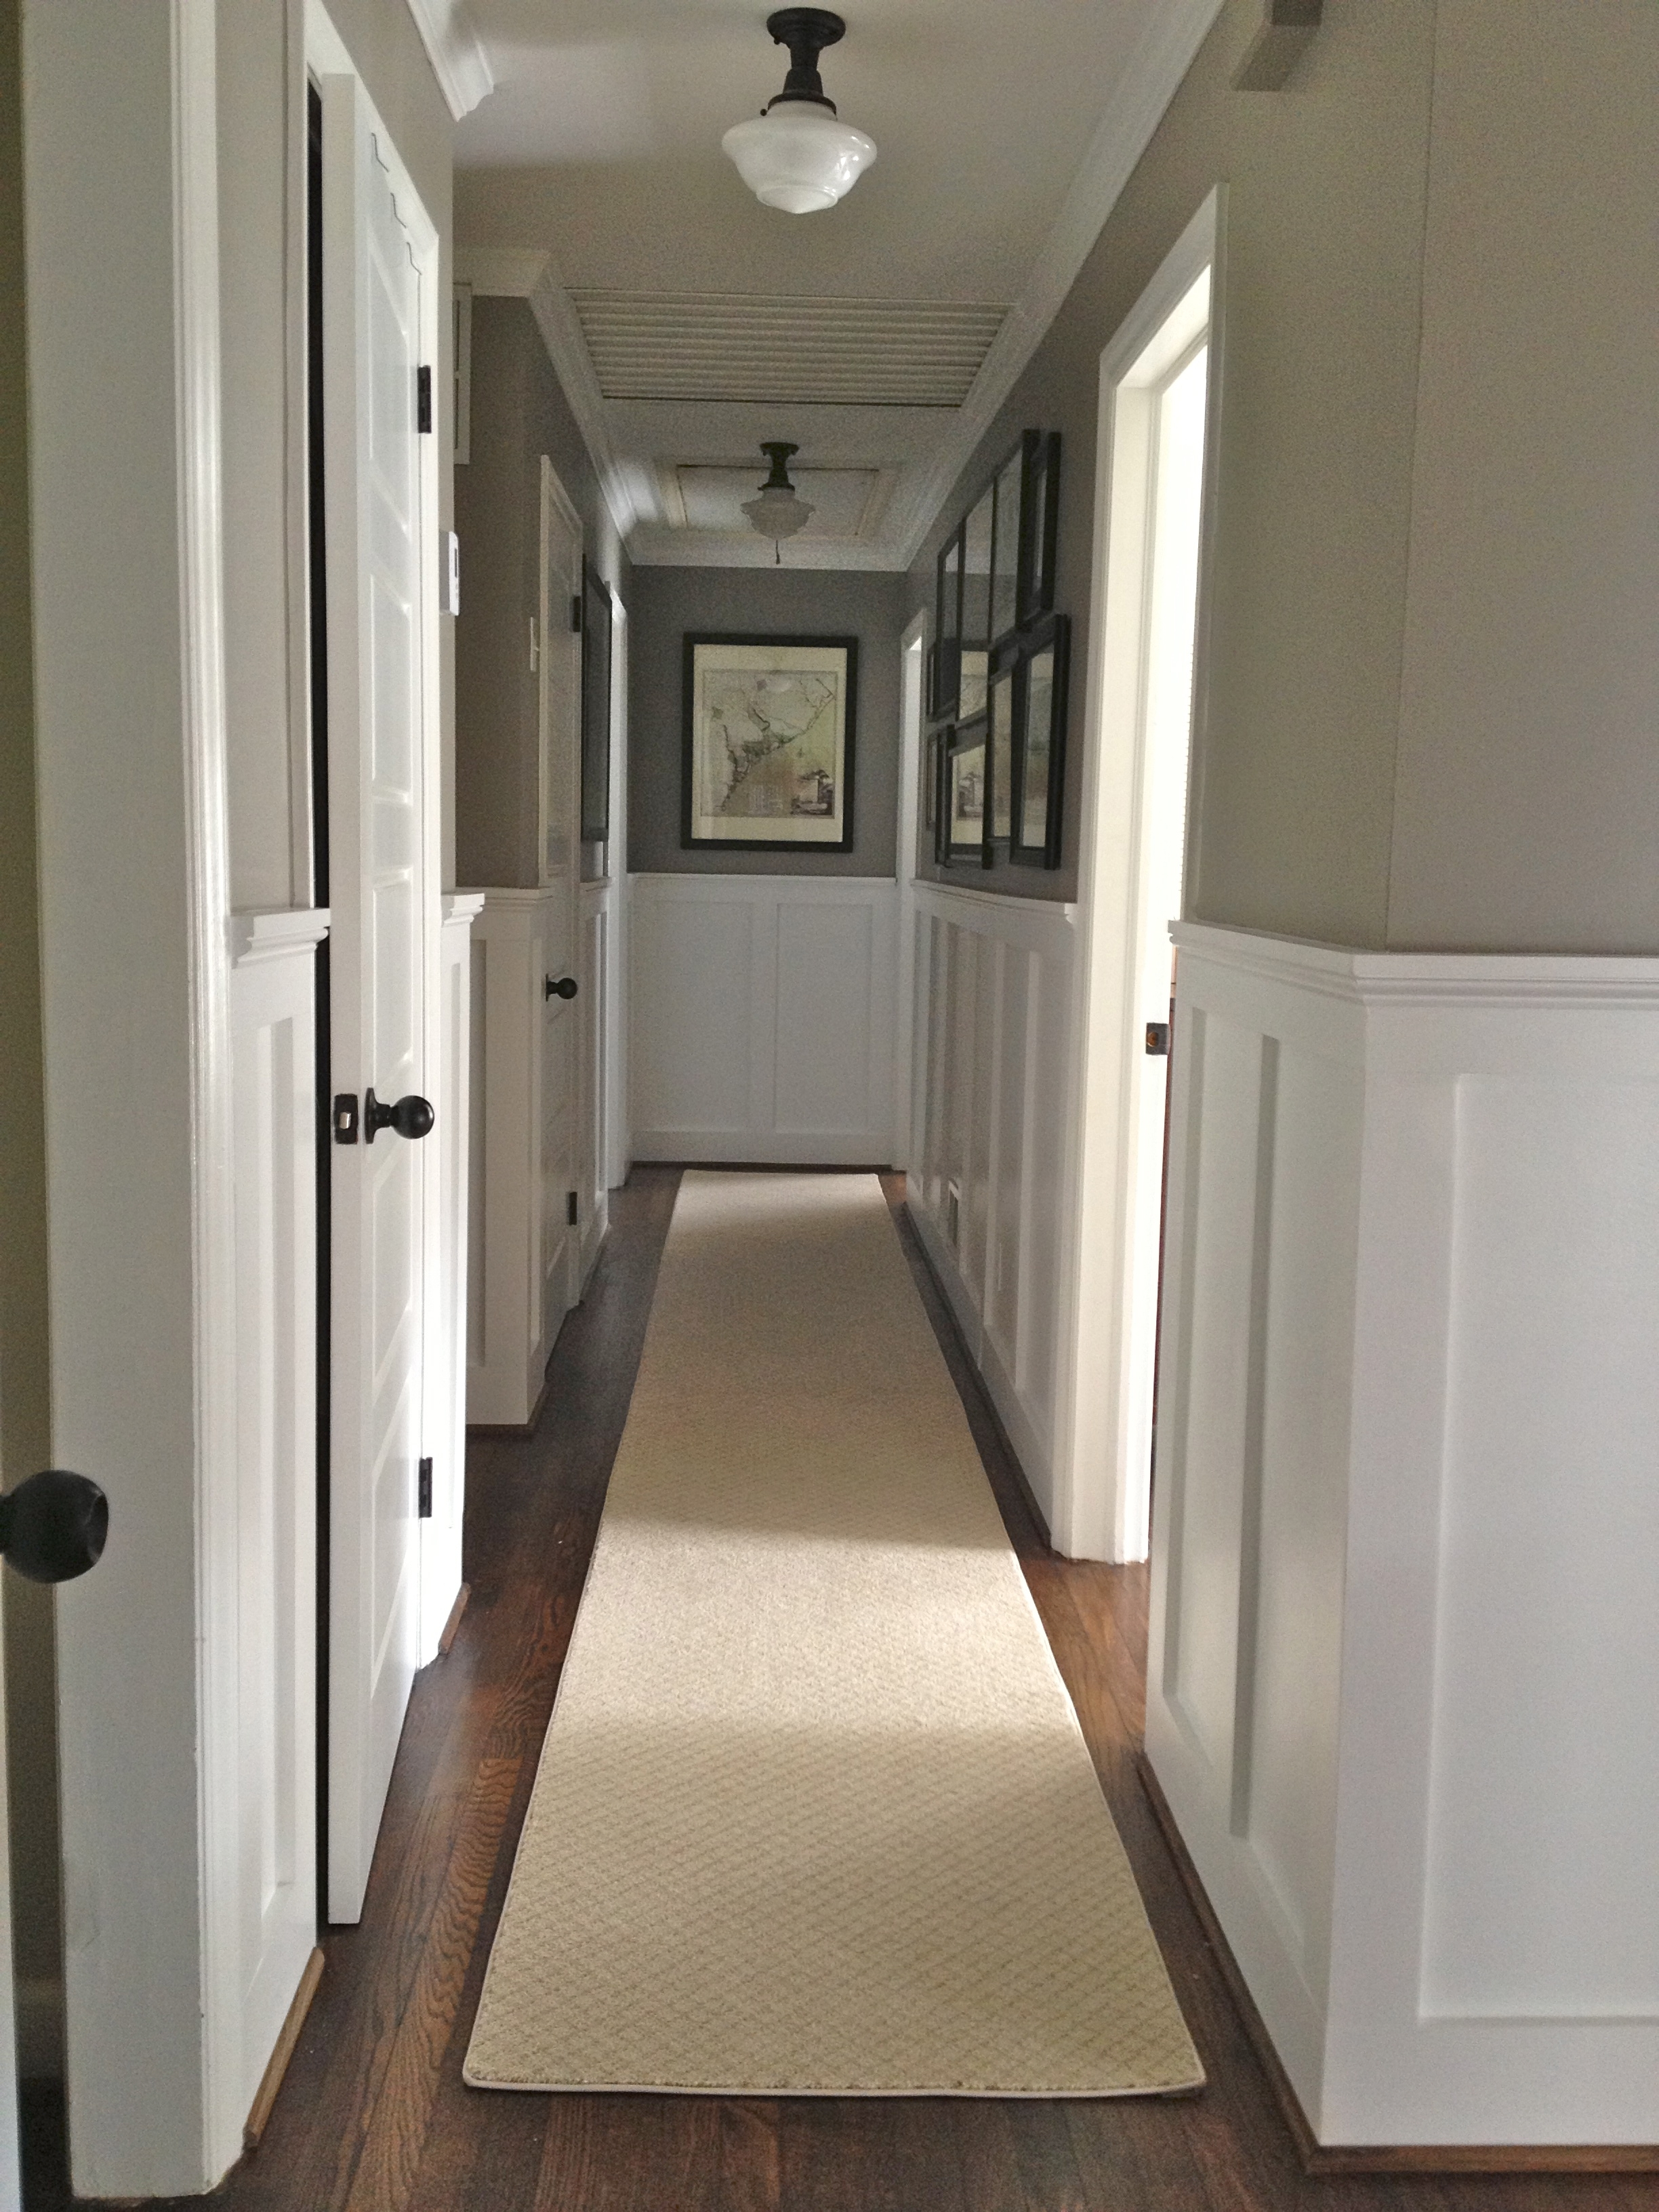 Popular Photo of Rug Runners For Hallway